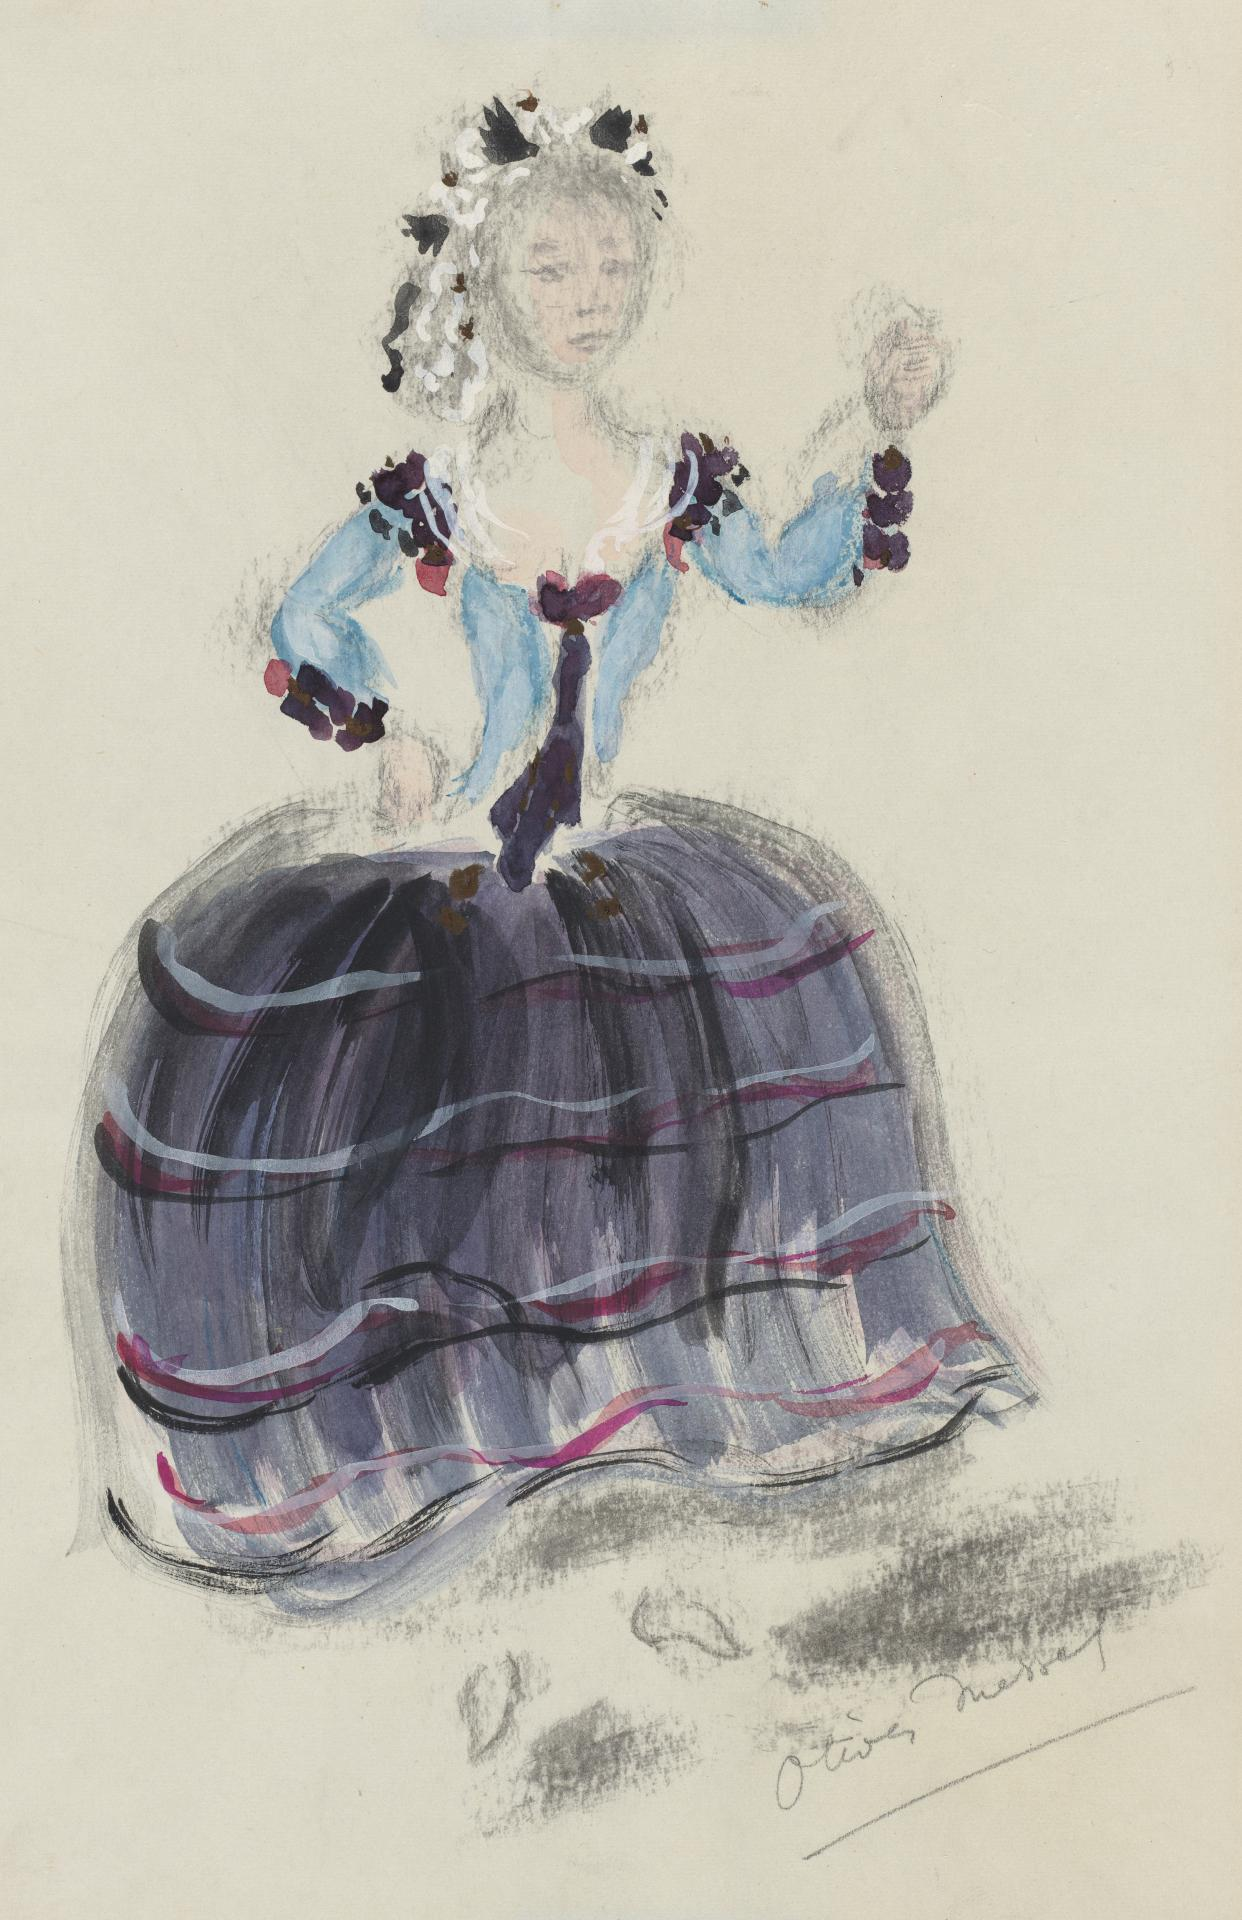 Costume design for a female character